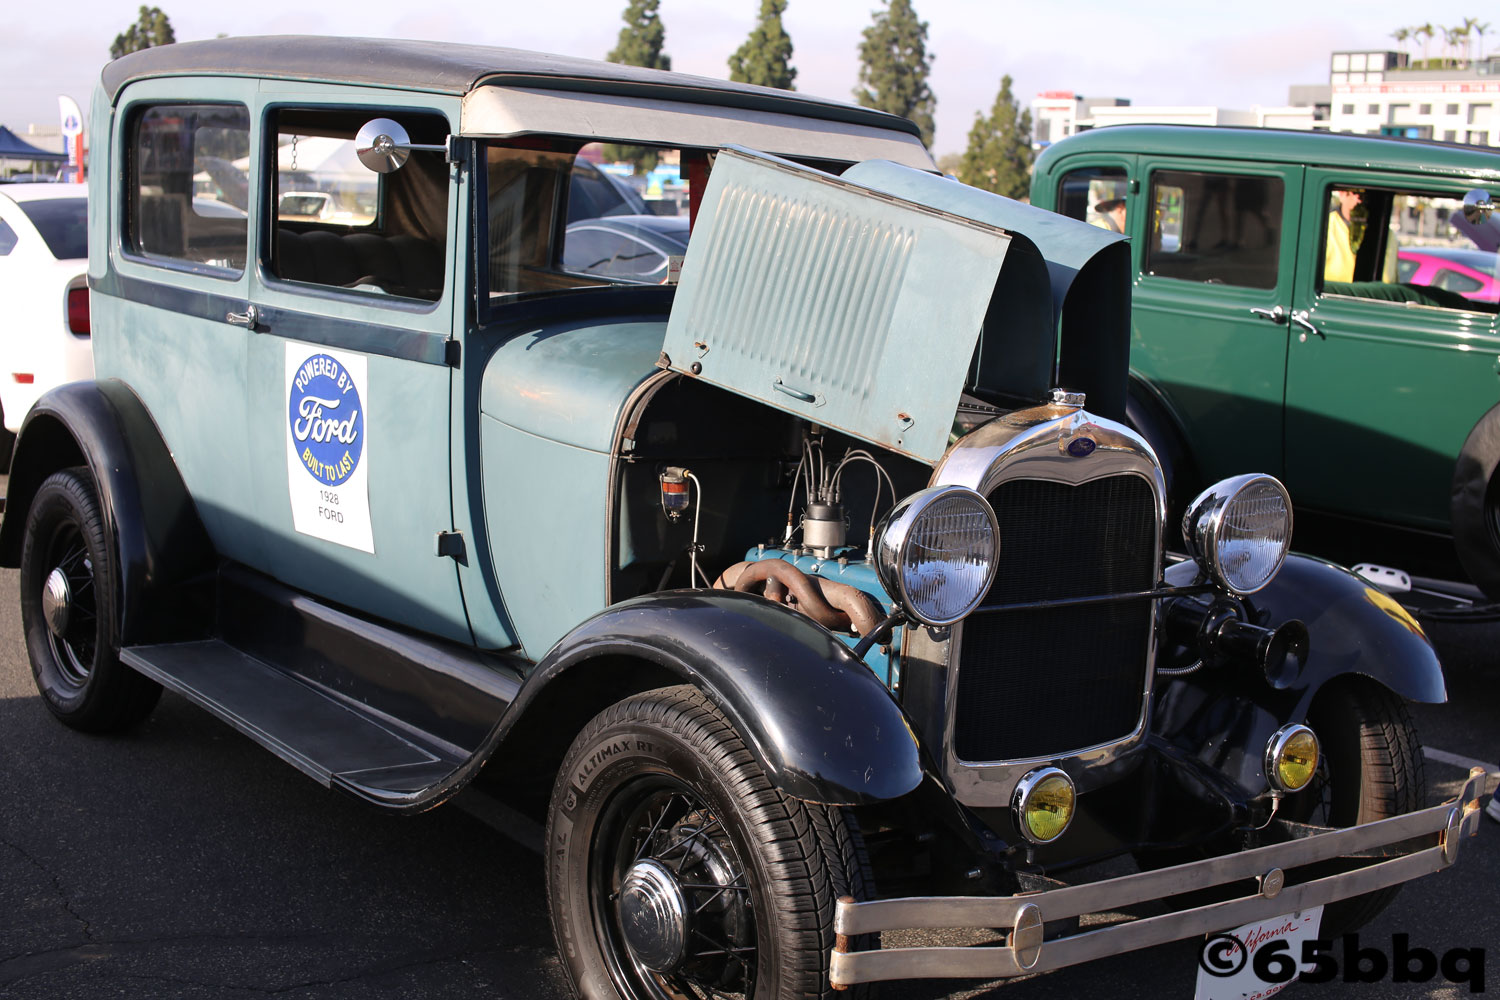 fabulous-fords-forever-april-2019-65bbq-m43.jpg